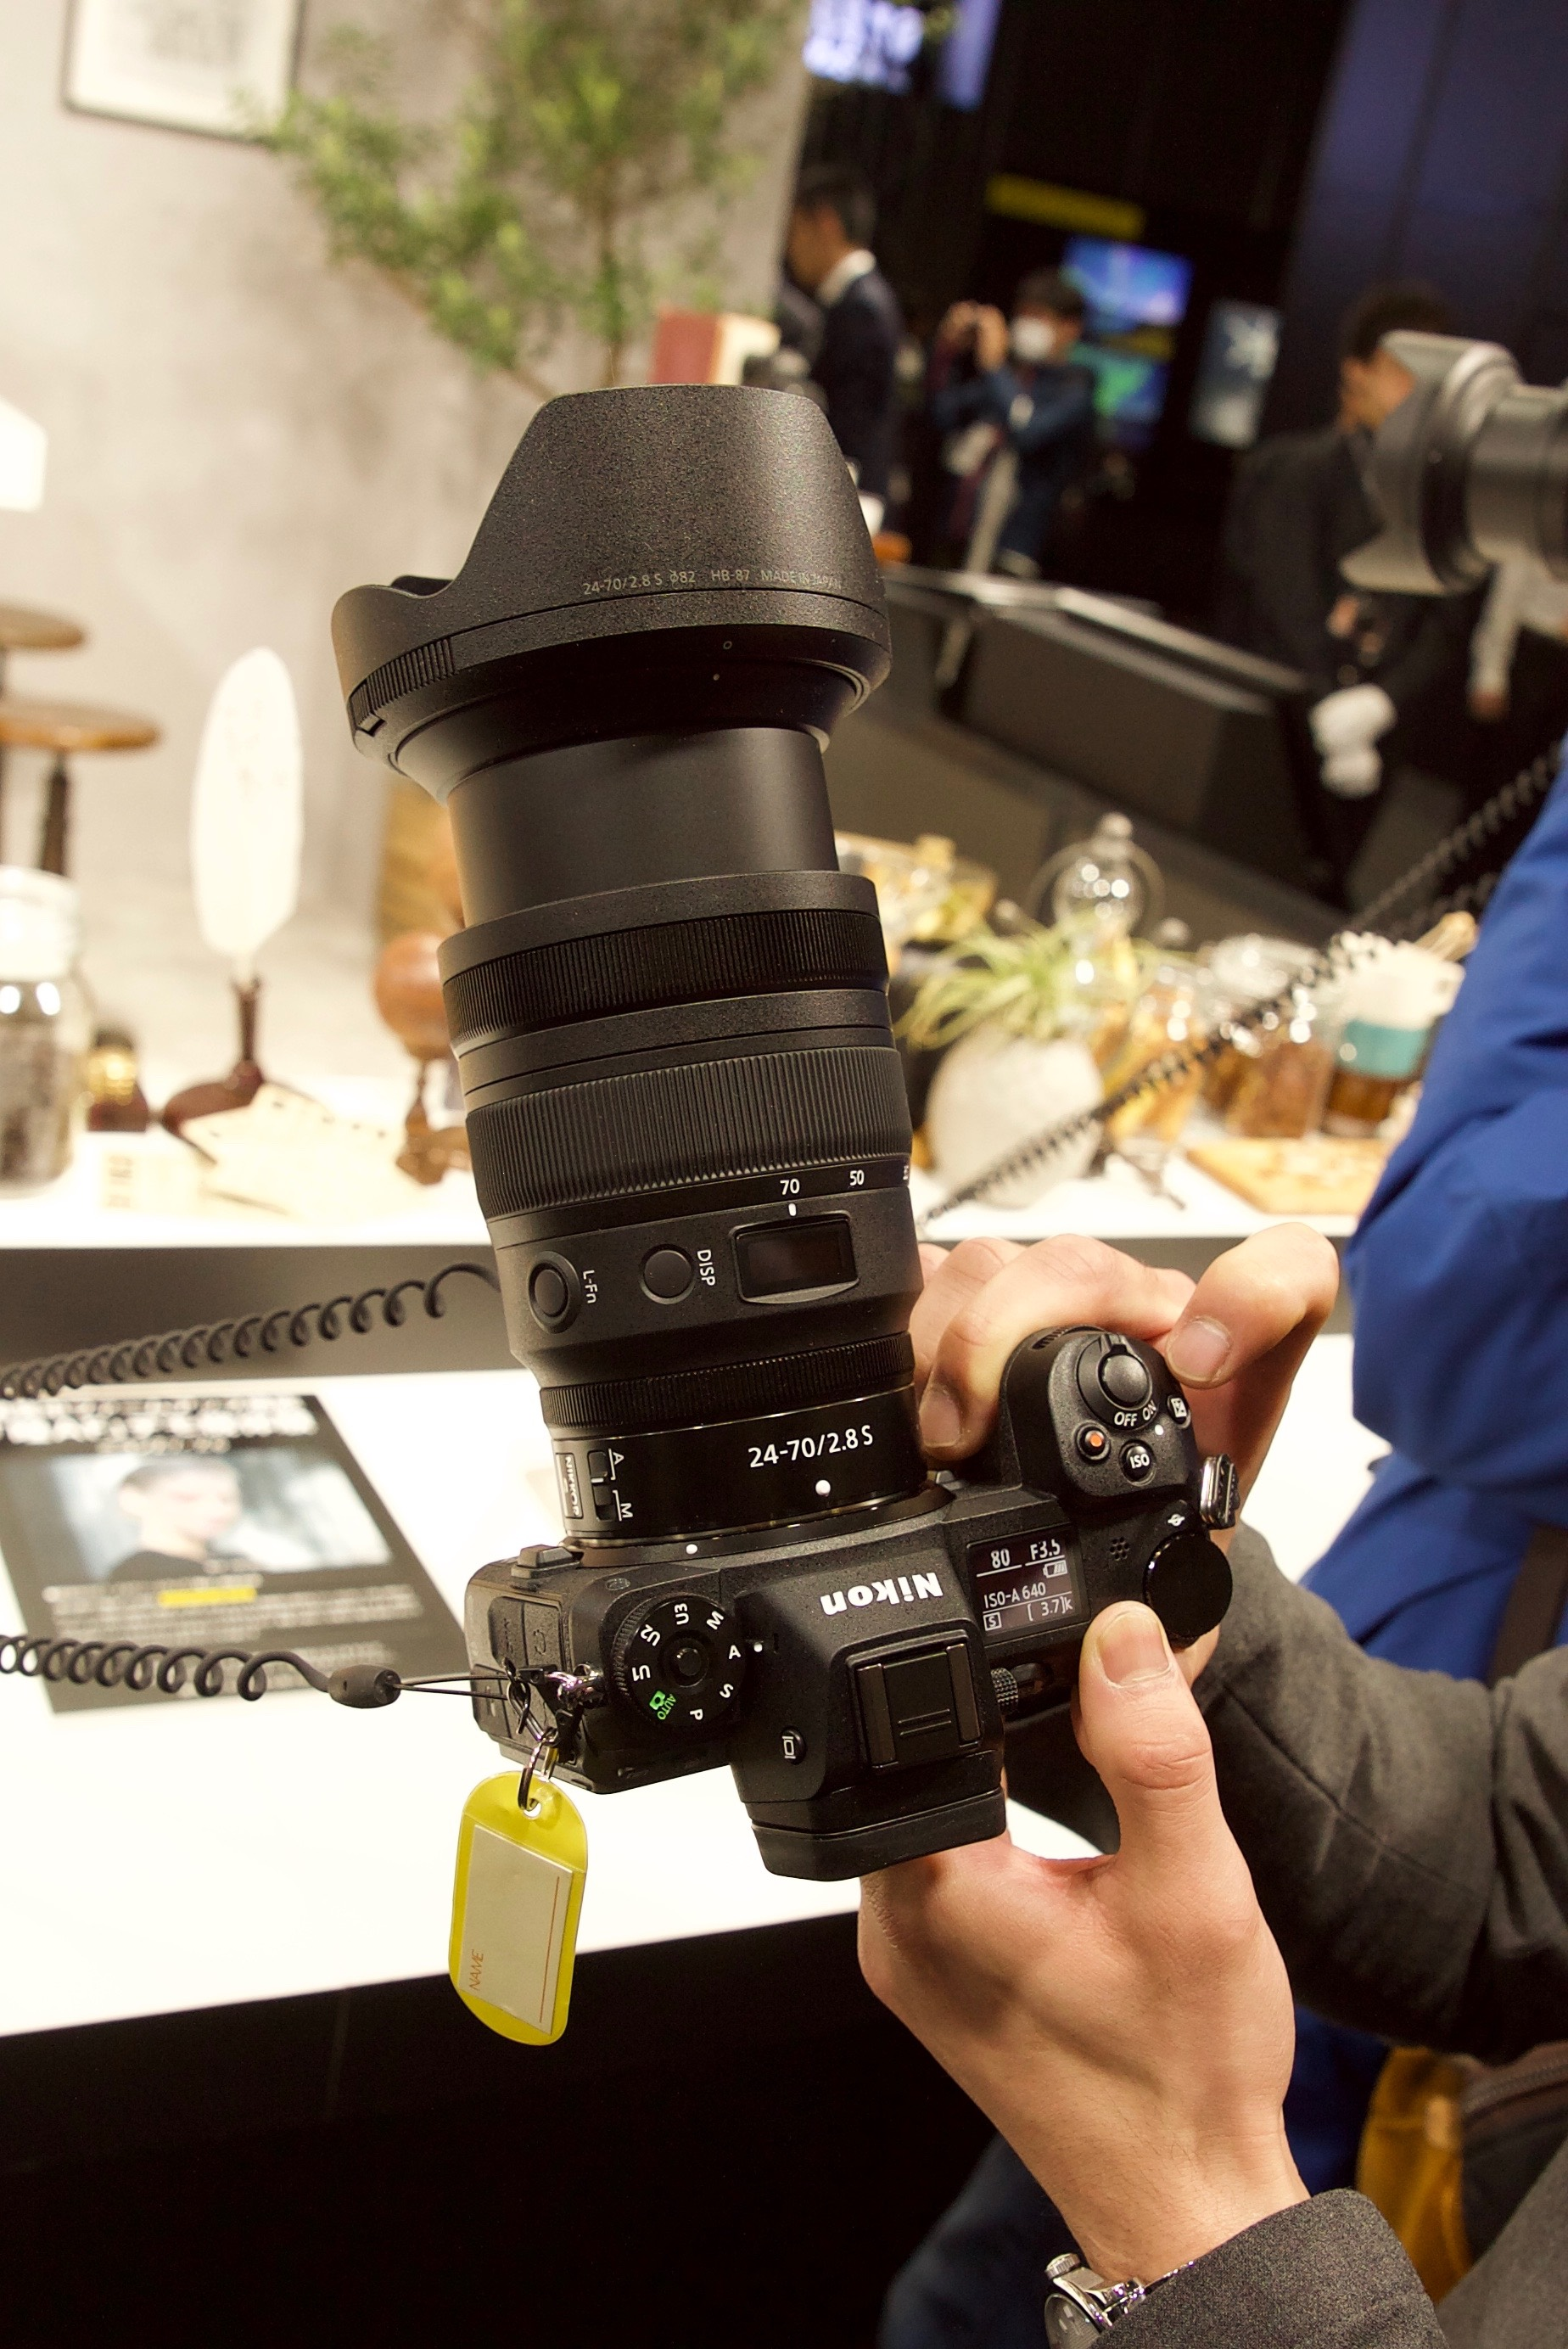 NIKKOR Z 14-30mm f/4 S & 24-70mm f/2.8 S lenses at CP+ 2019